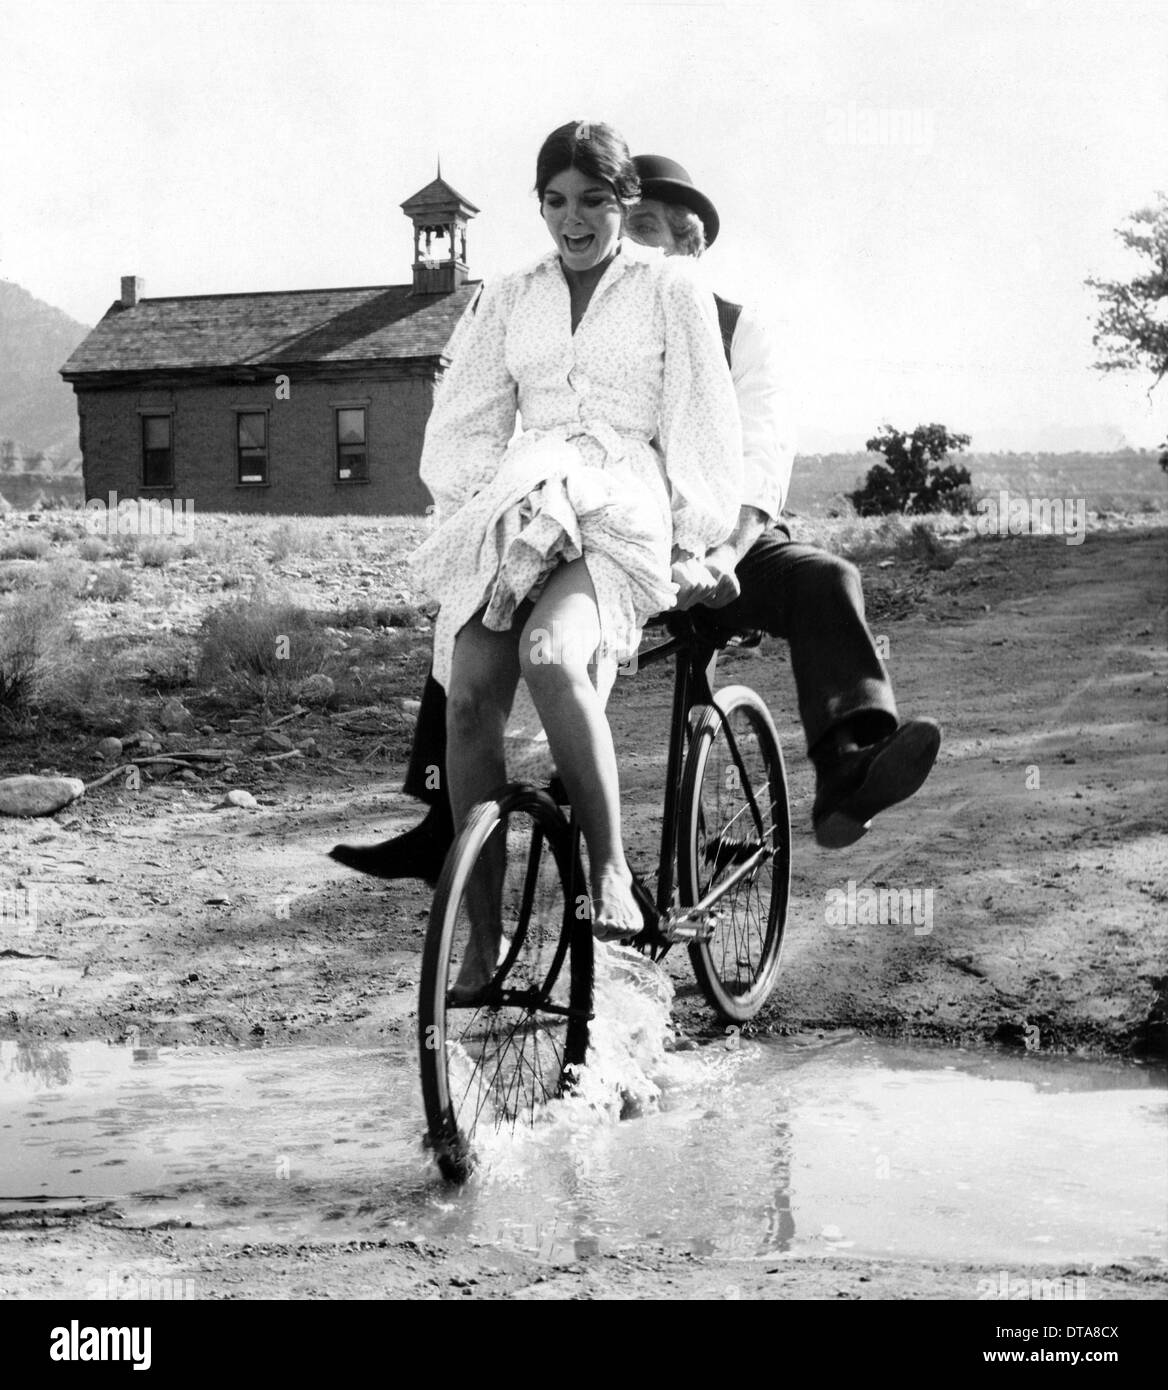 Resultado de imagen de paul newman and katherine ross cycling